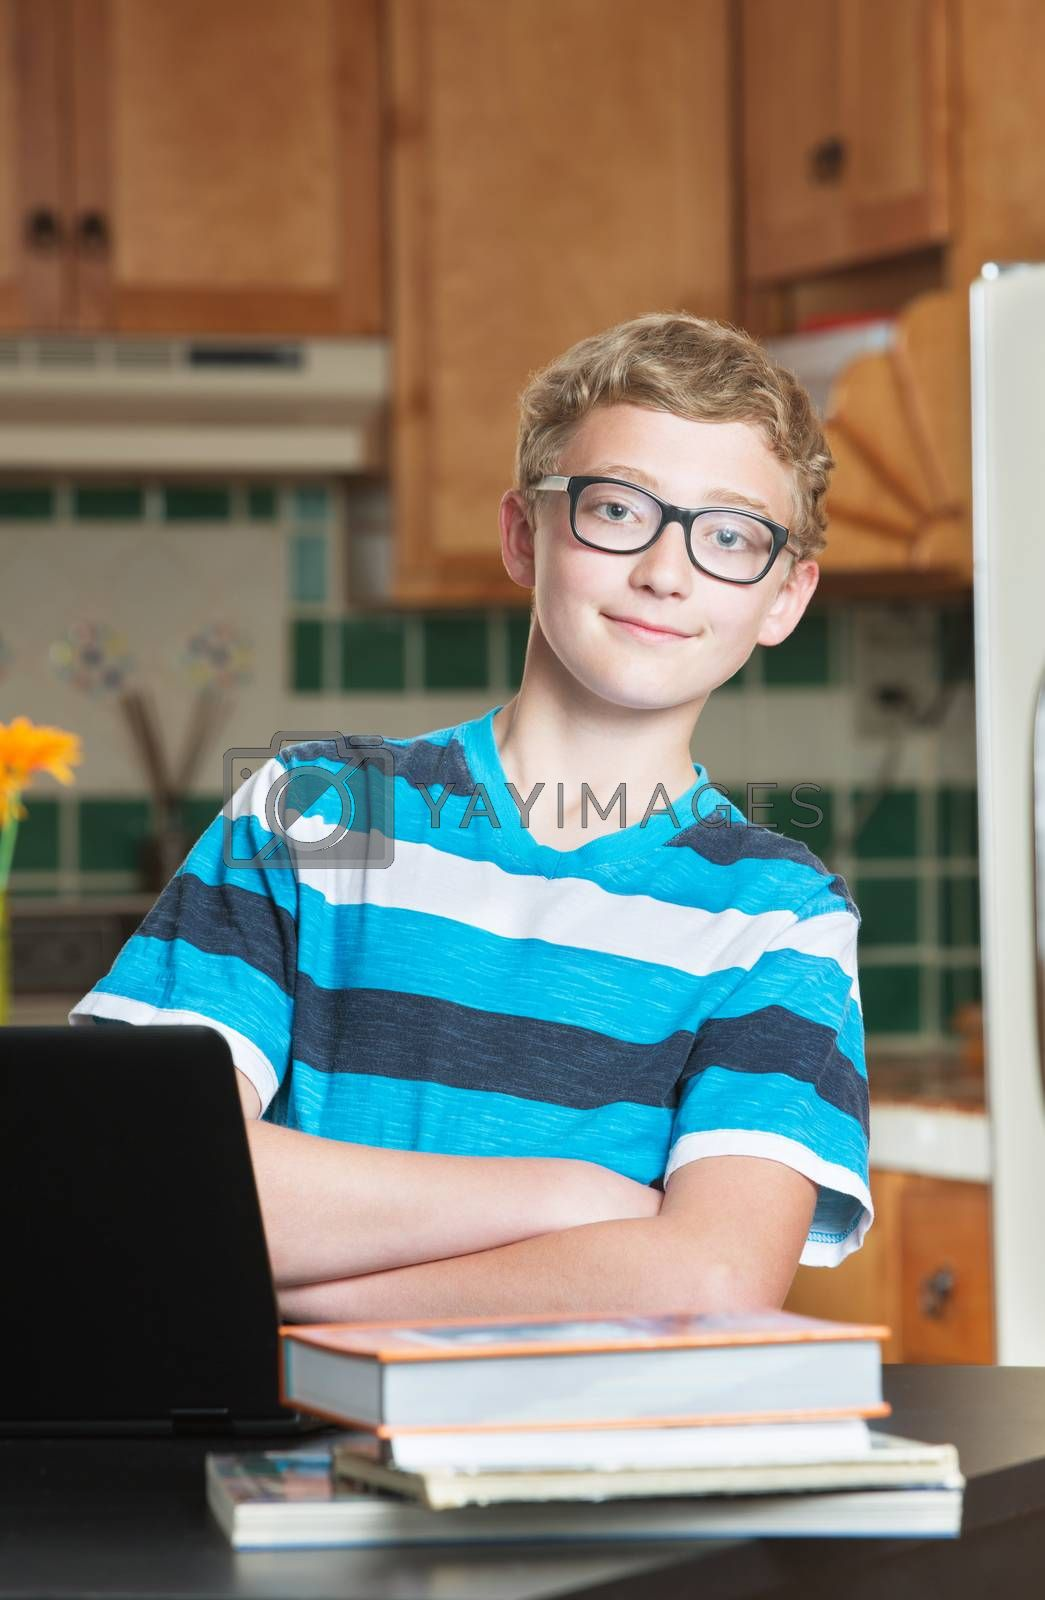 Single confident teenage male student in kitchen with textbooks